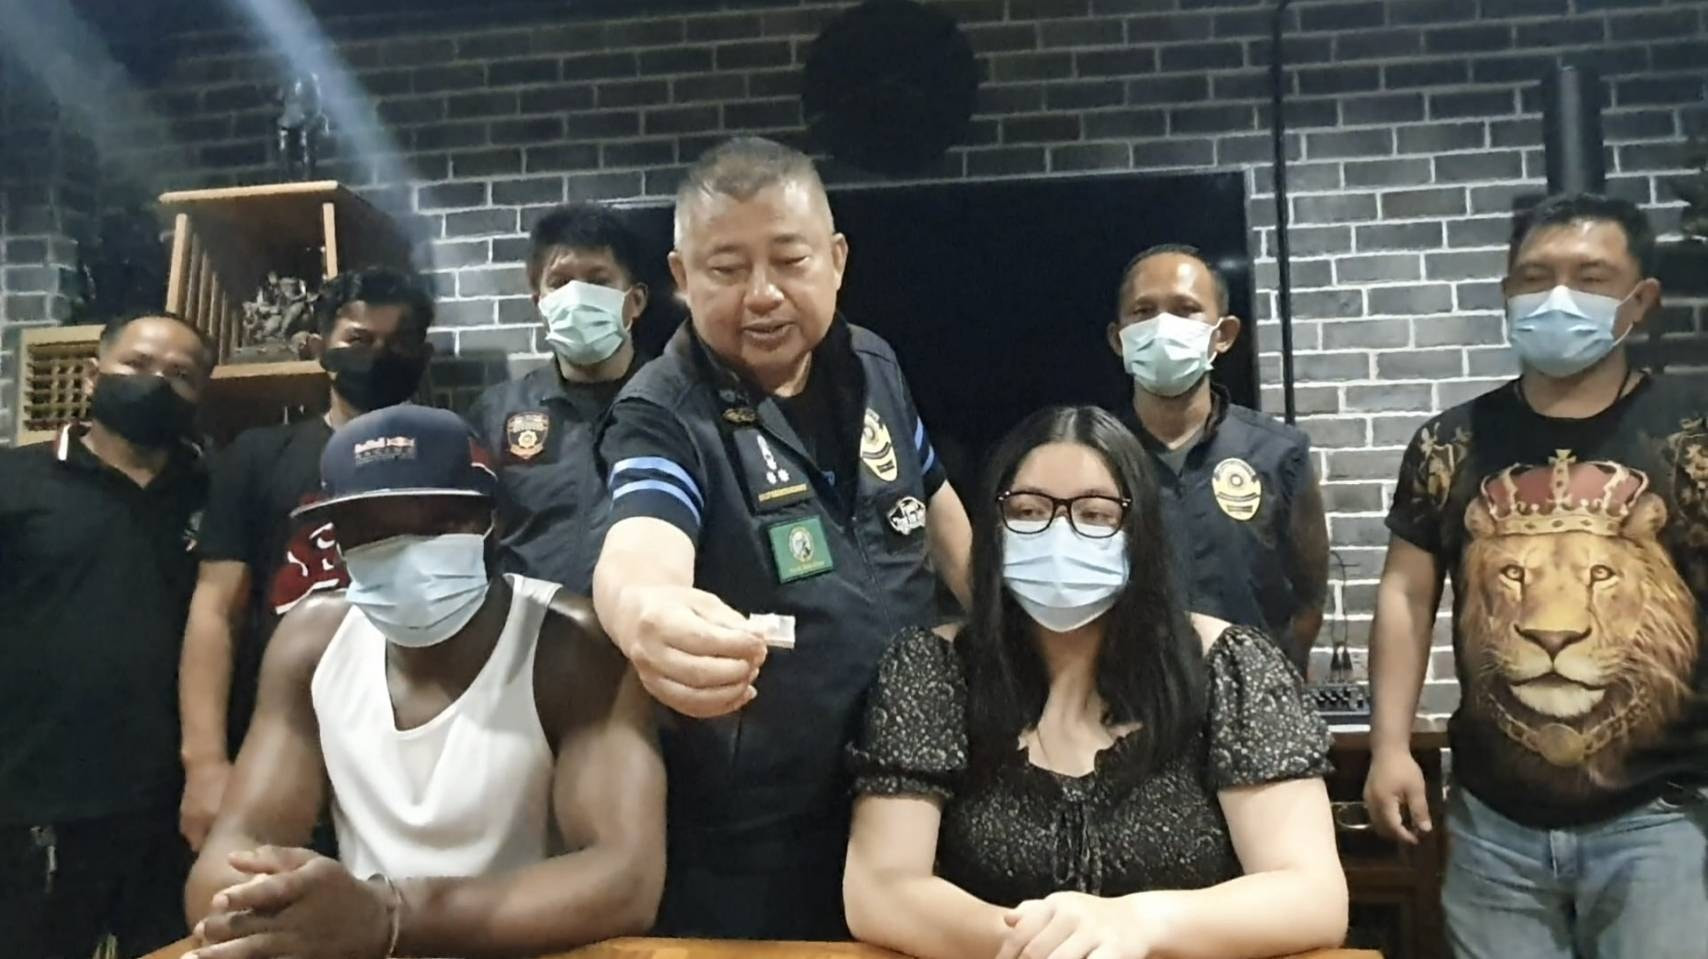 Nigerian Man And His Girlfriend Arrested In Thailand For Allegedly Peddling Cocaine [Photos] 8